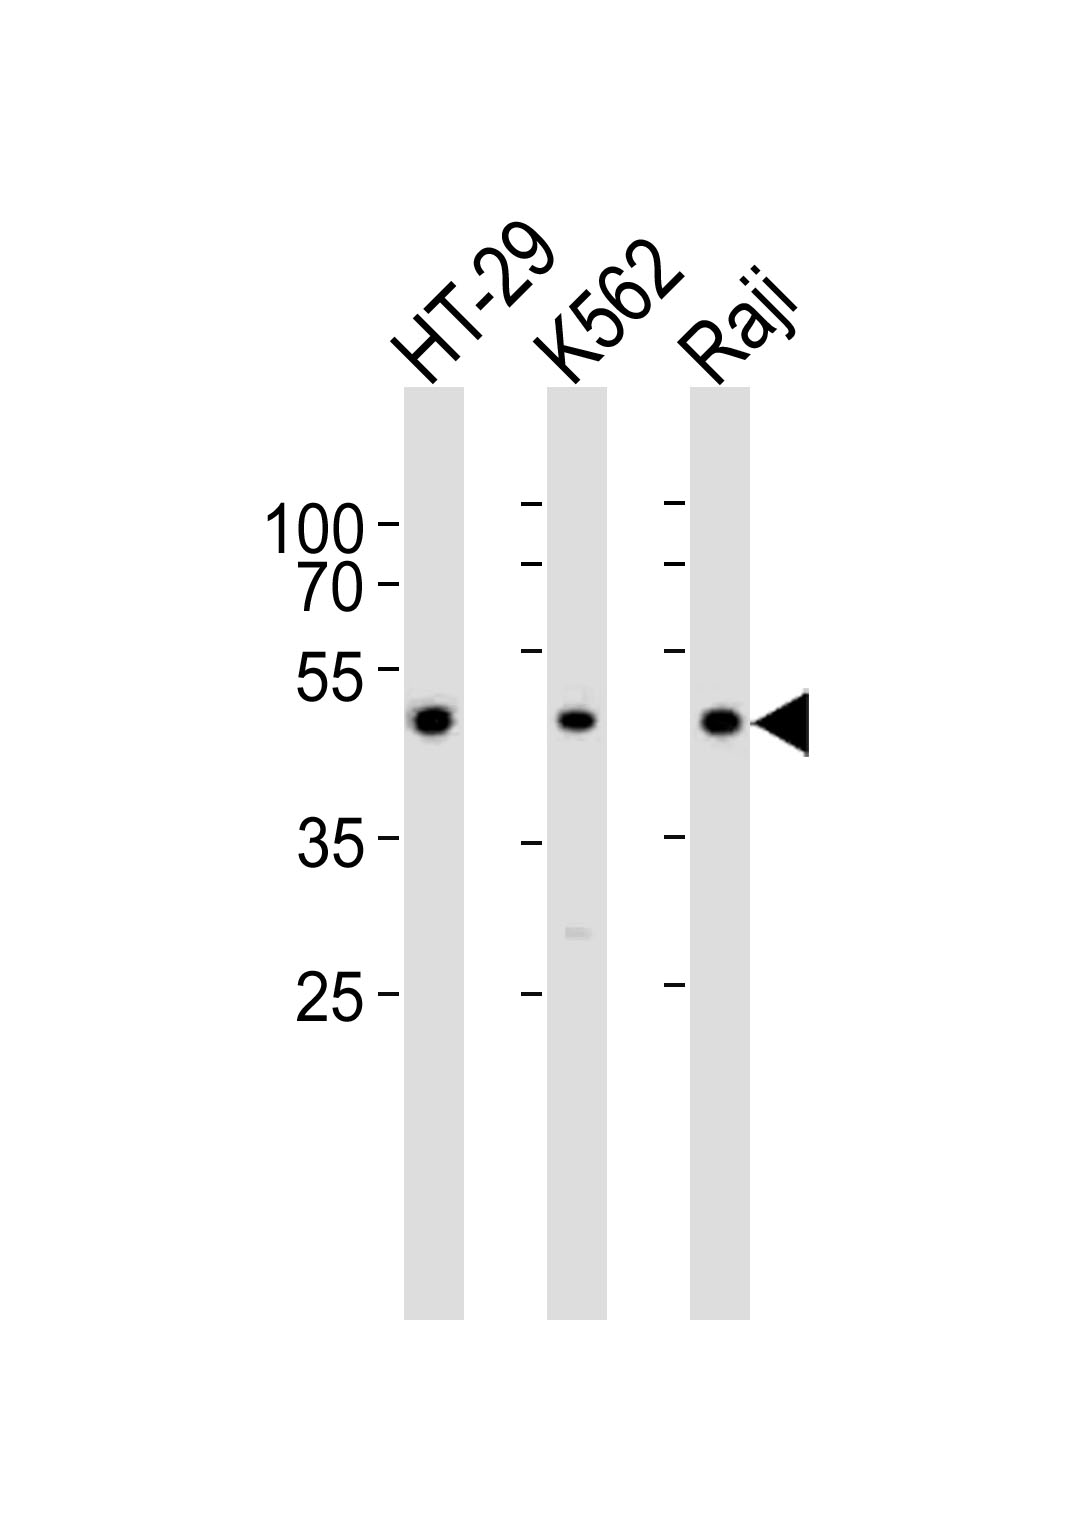 Western blot of lysates from HT-29, K562, Raji cell line (from left to right) with IL13RA1 Antibody. Antibody was diluted at 1:1000 at each lane. A goat anti-rabbit IgG H&L (HRP) at 1:10000 dilution was used as the secondary antibody. Lysates at 35 ug per lane.